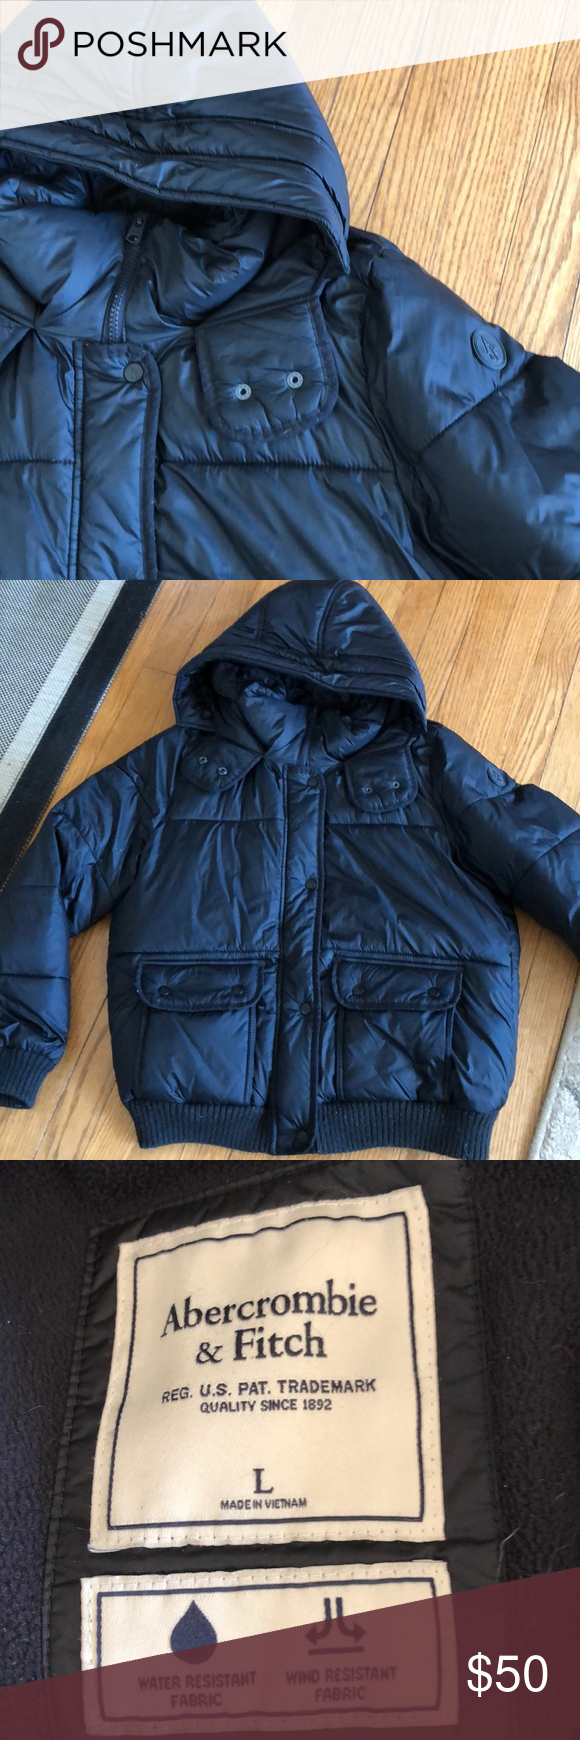 Abercrombie Puffer Jacket Abercrombie And Fitch Jackets Clothes Design Black Puffer Jacket [ 1740 x 580 Pixel ]